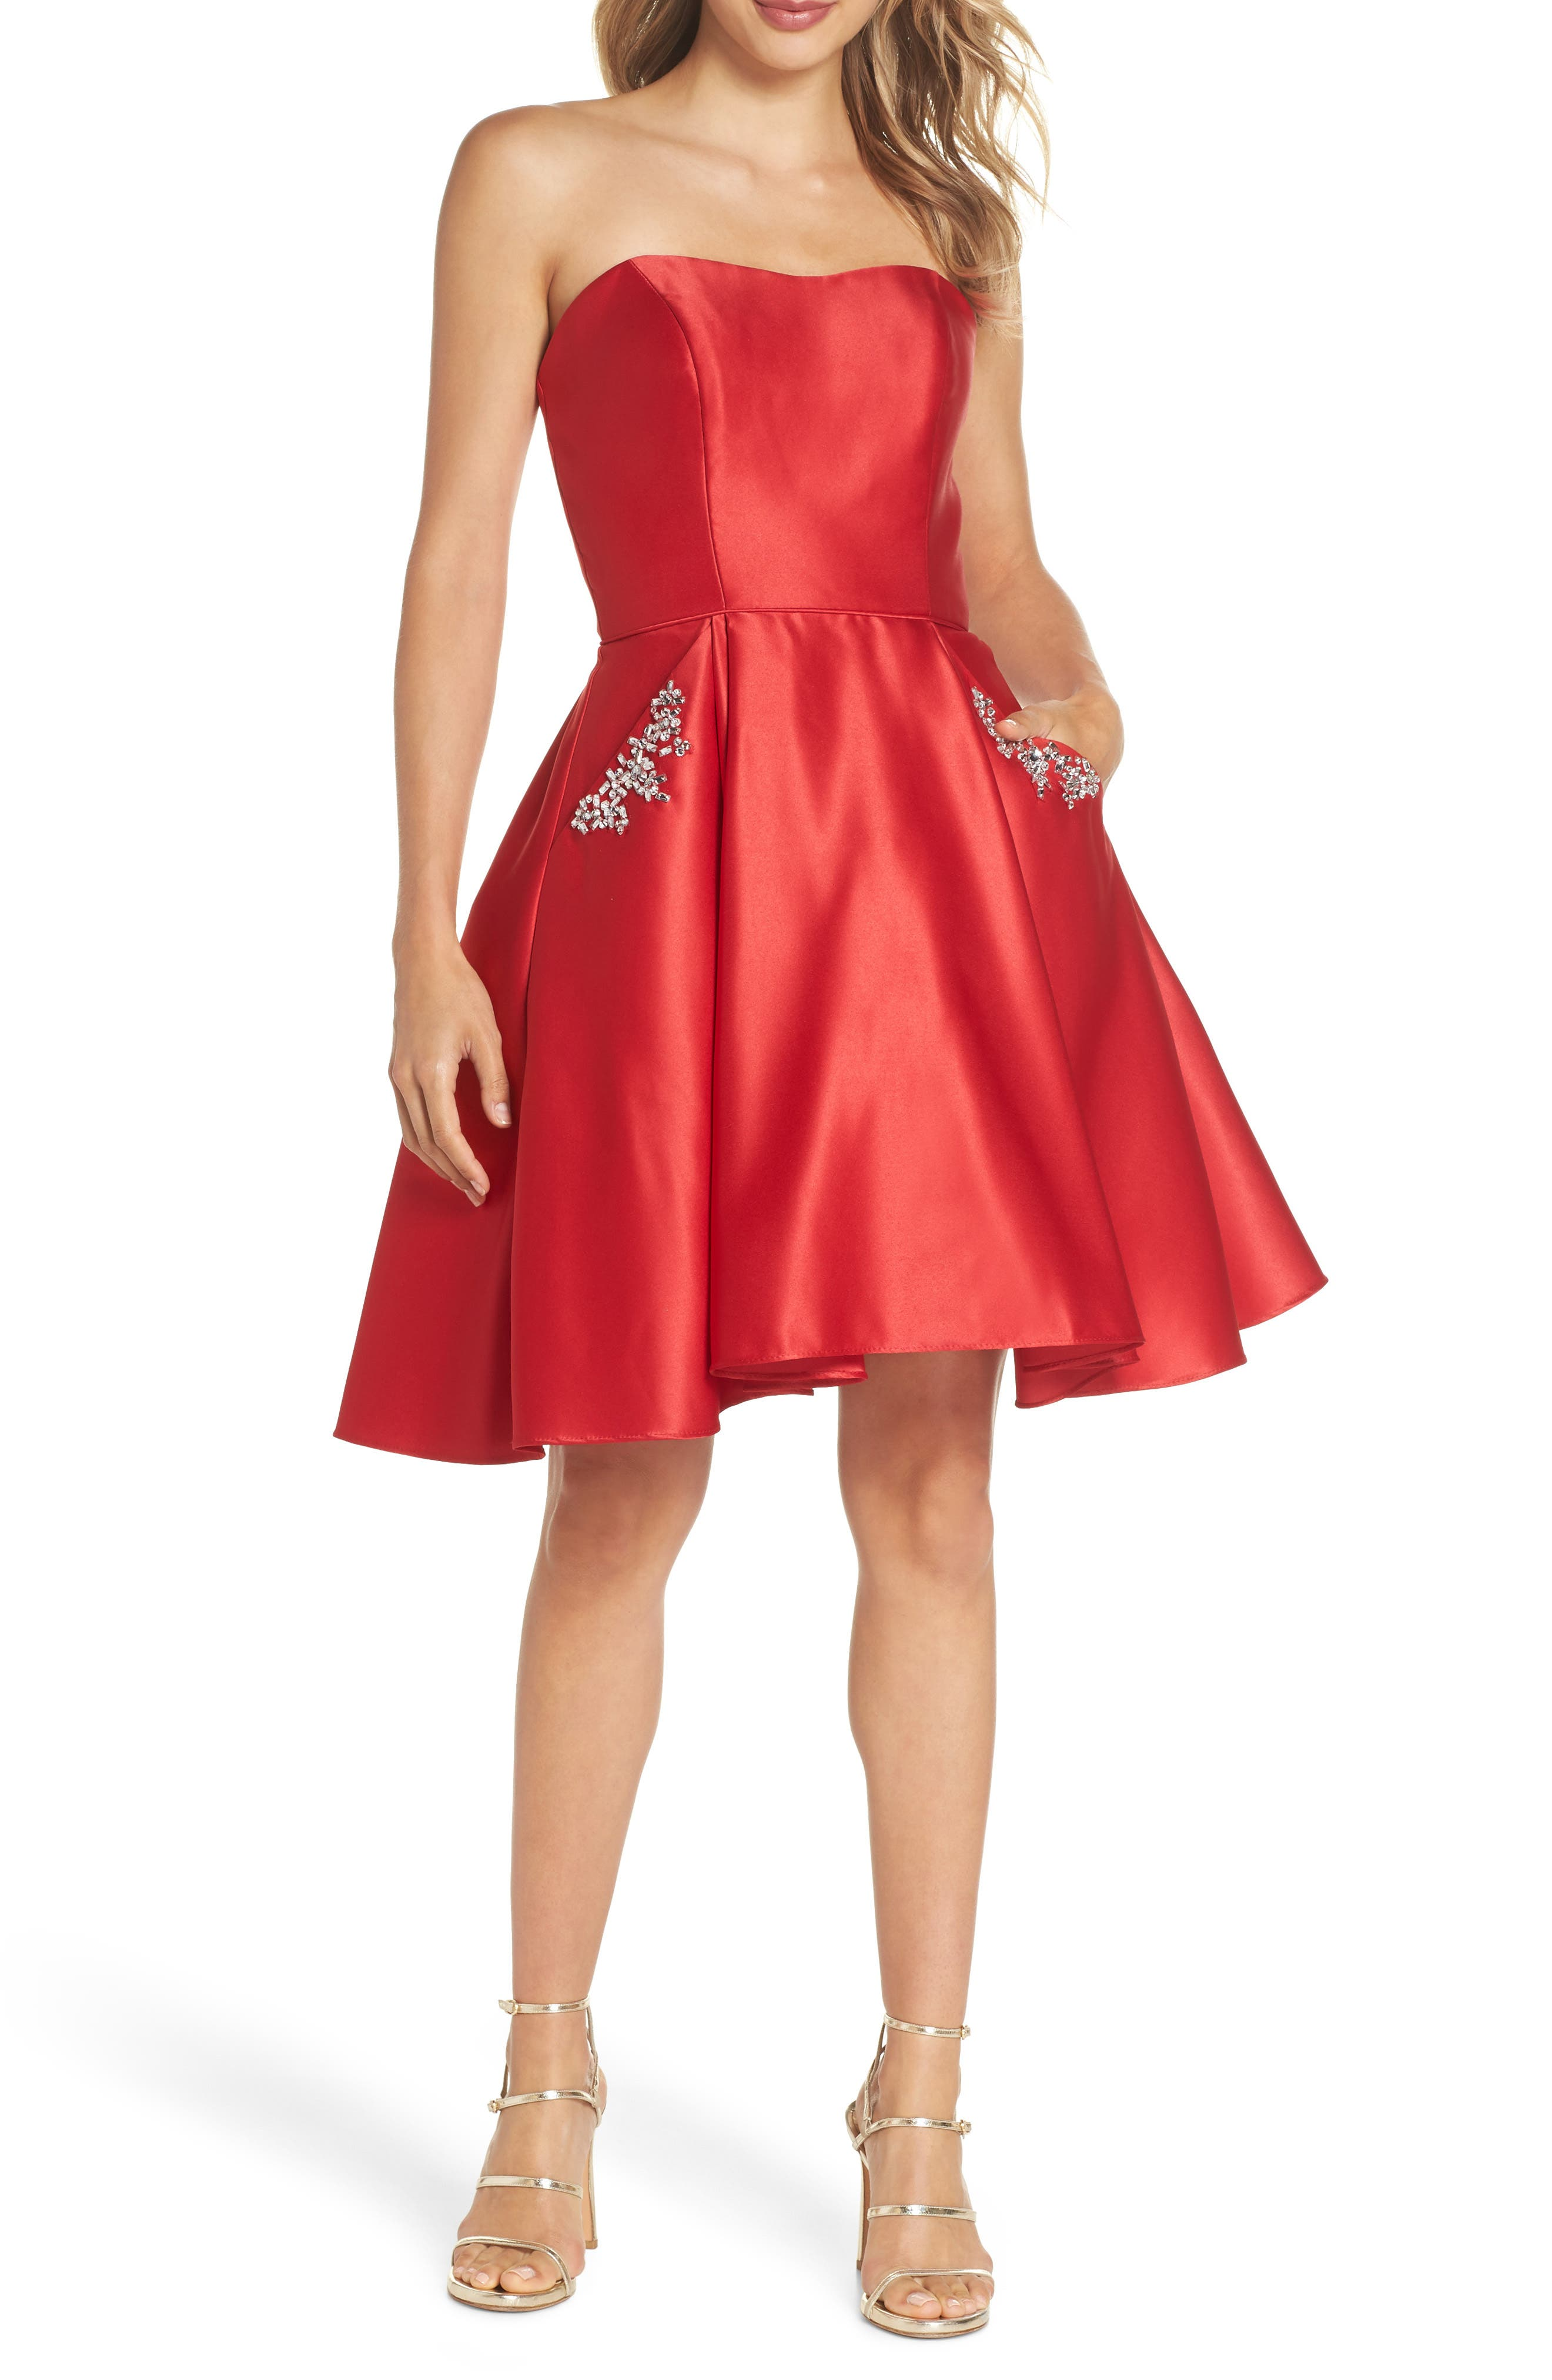 Strapless Satin Fit & Flare Party Dress,                             Main thumbnail 1, color,                             RED